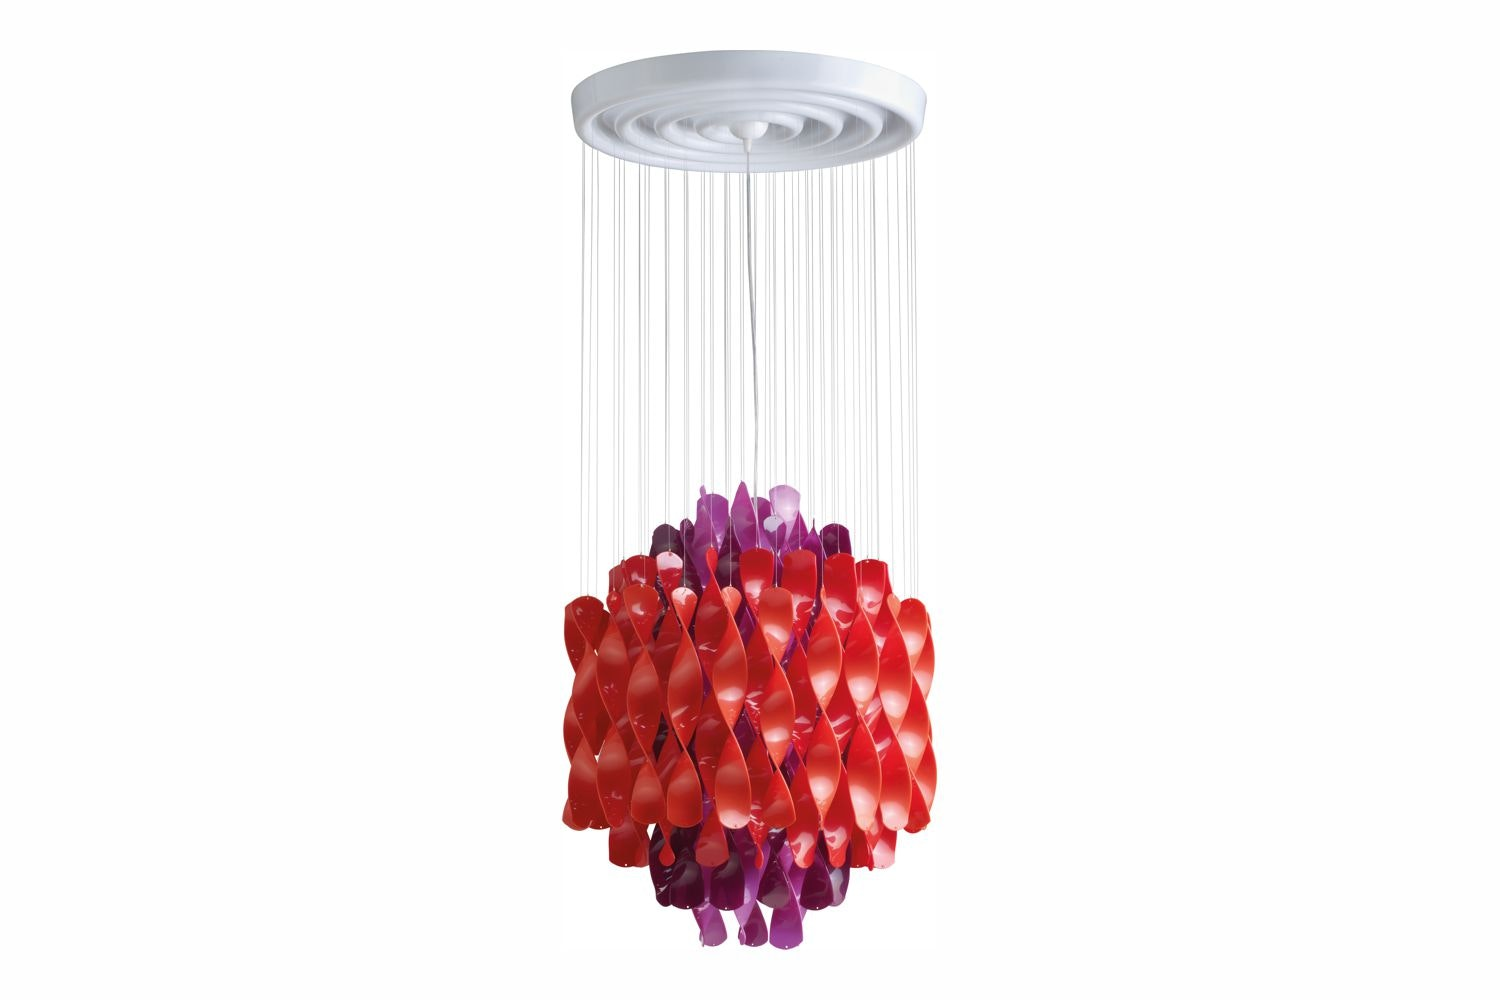 Spiral Small Suspension Lamp in Multicolour by Verner Panton for Verpan